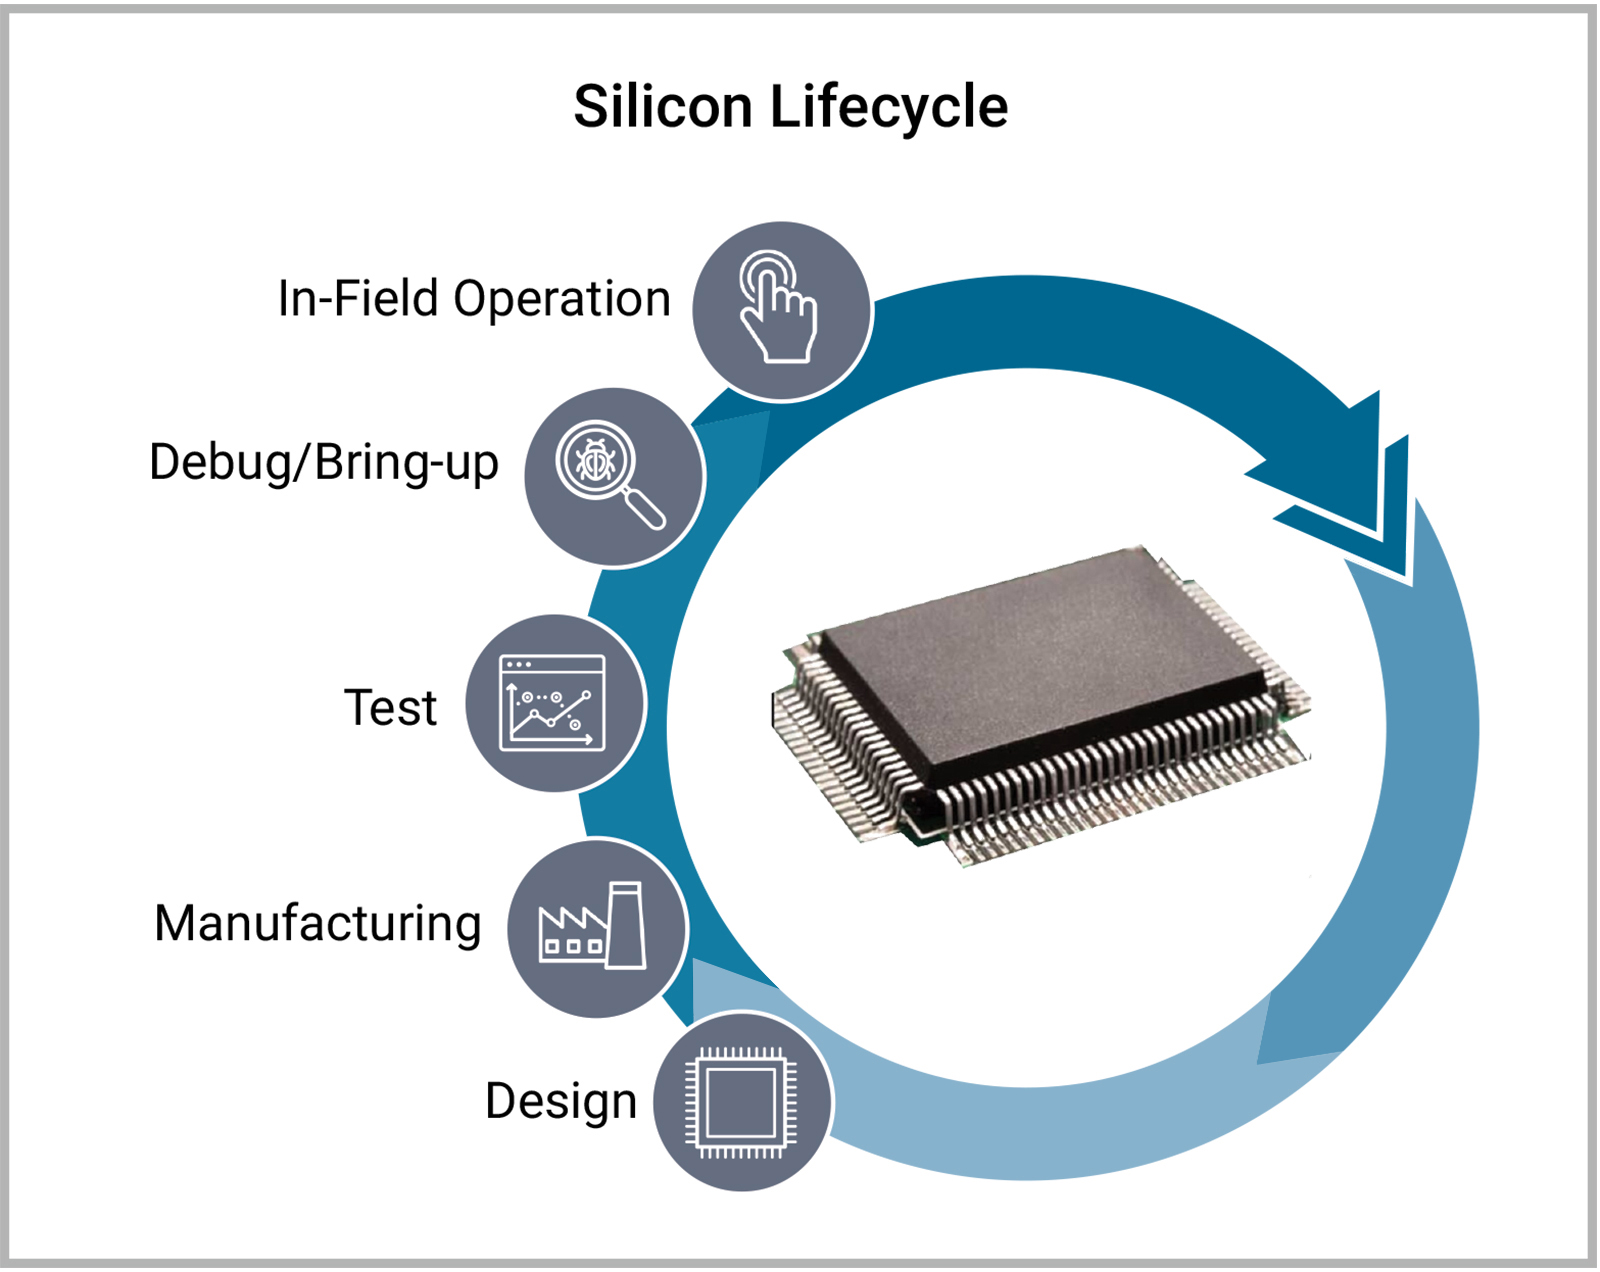 Synopsys introduces silicon lifecycle management platform